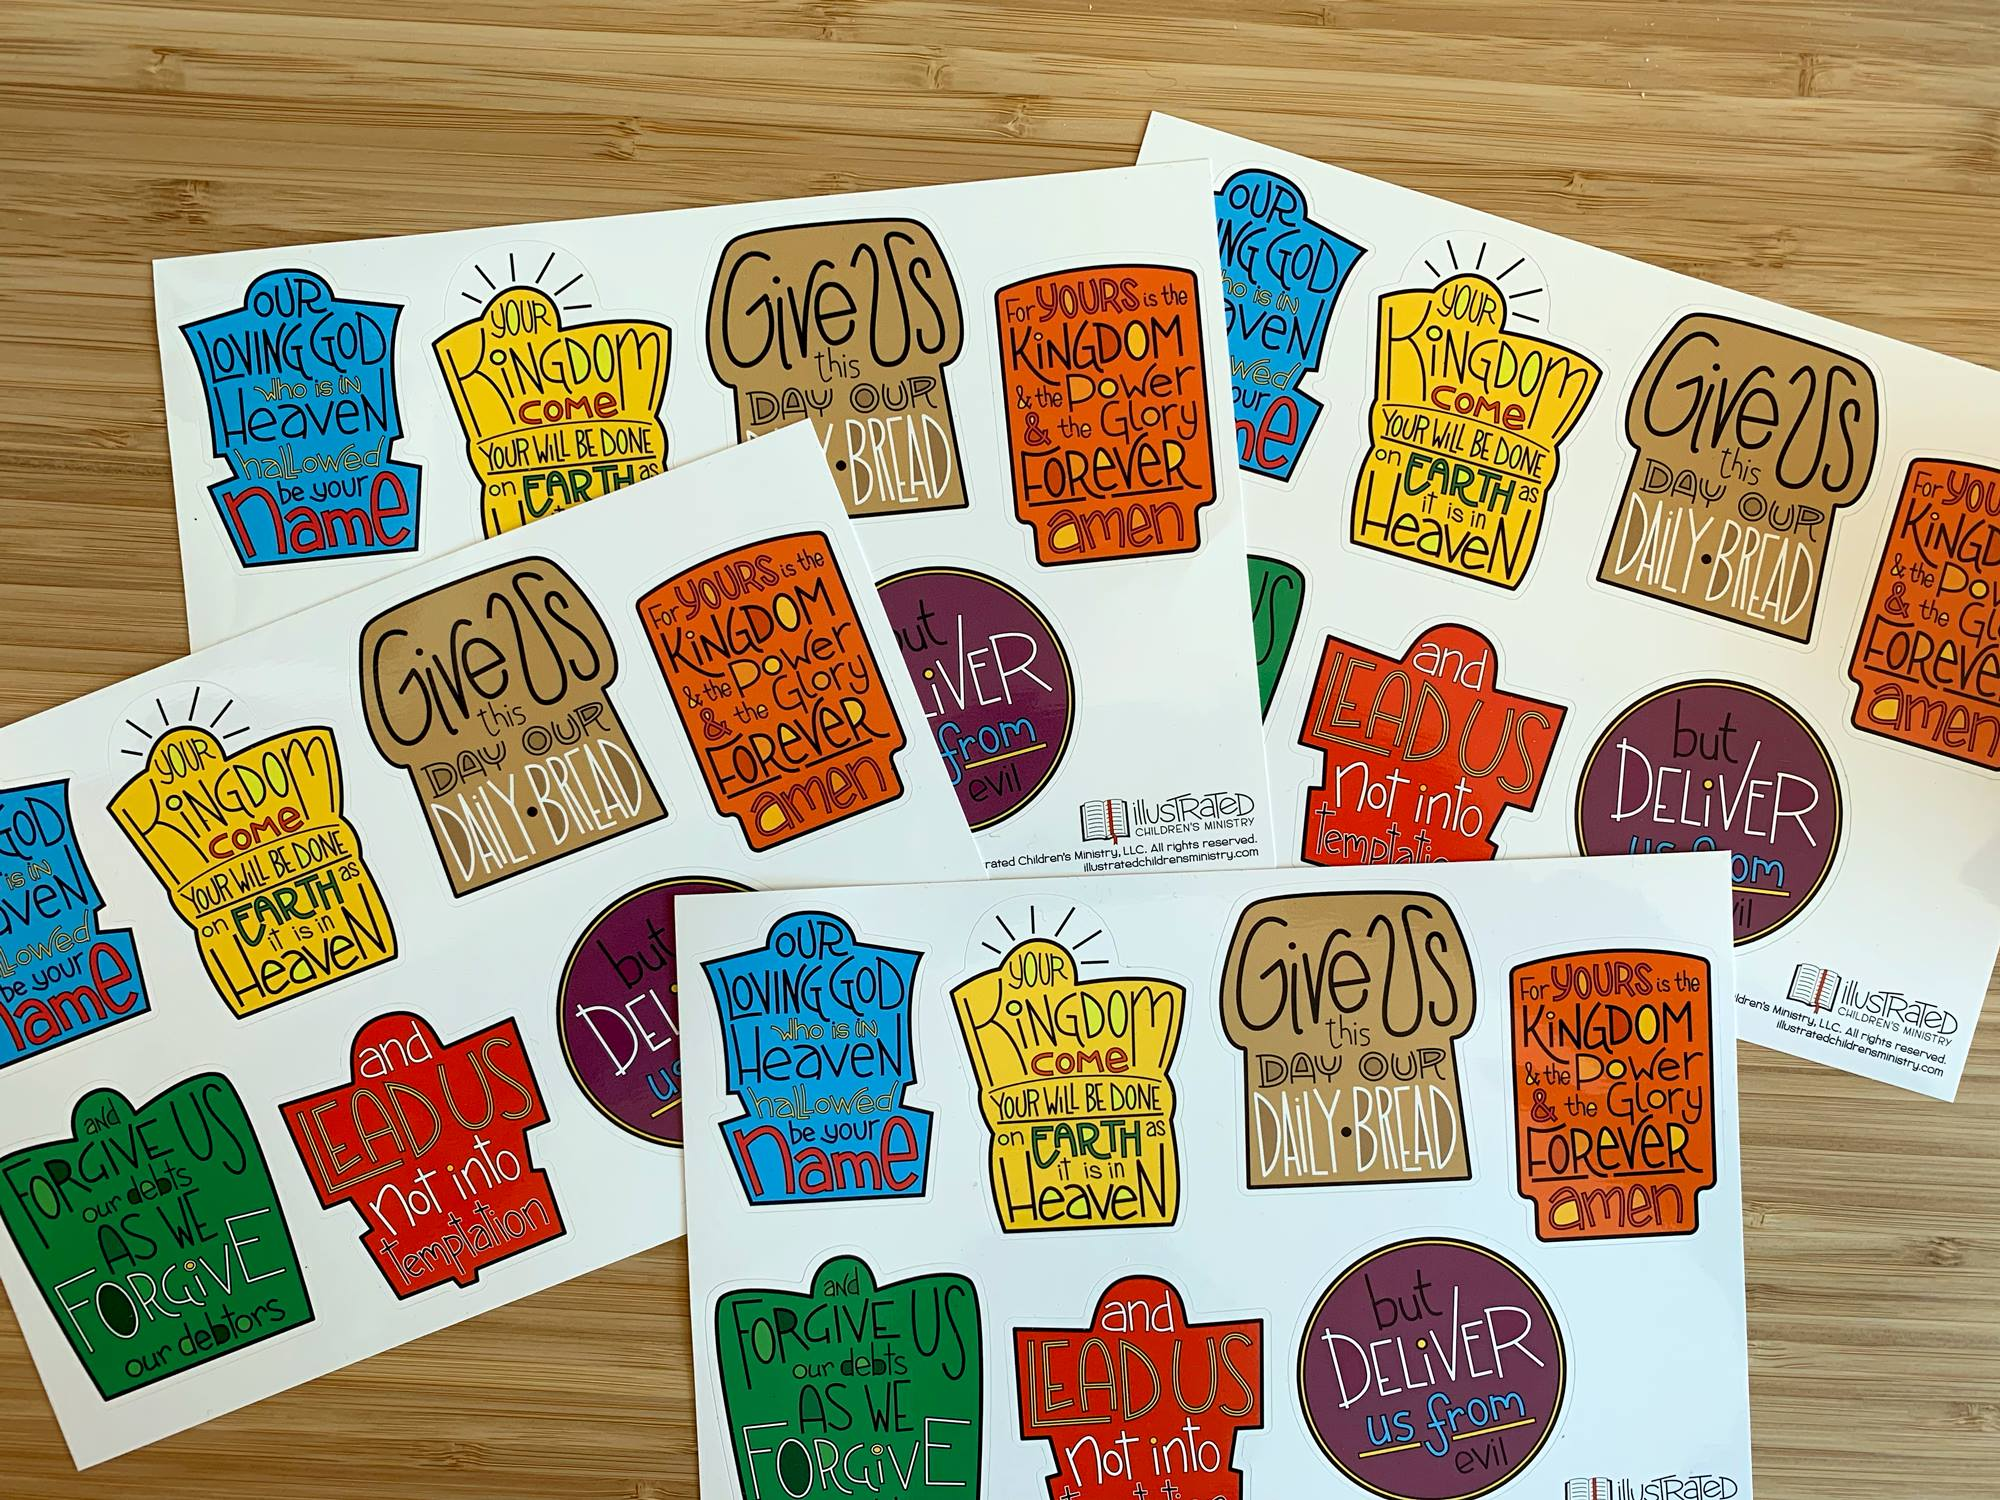 Sticker sheets of the Lord's Prayer